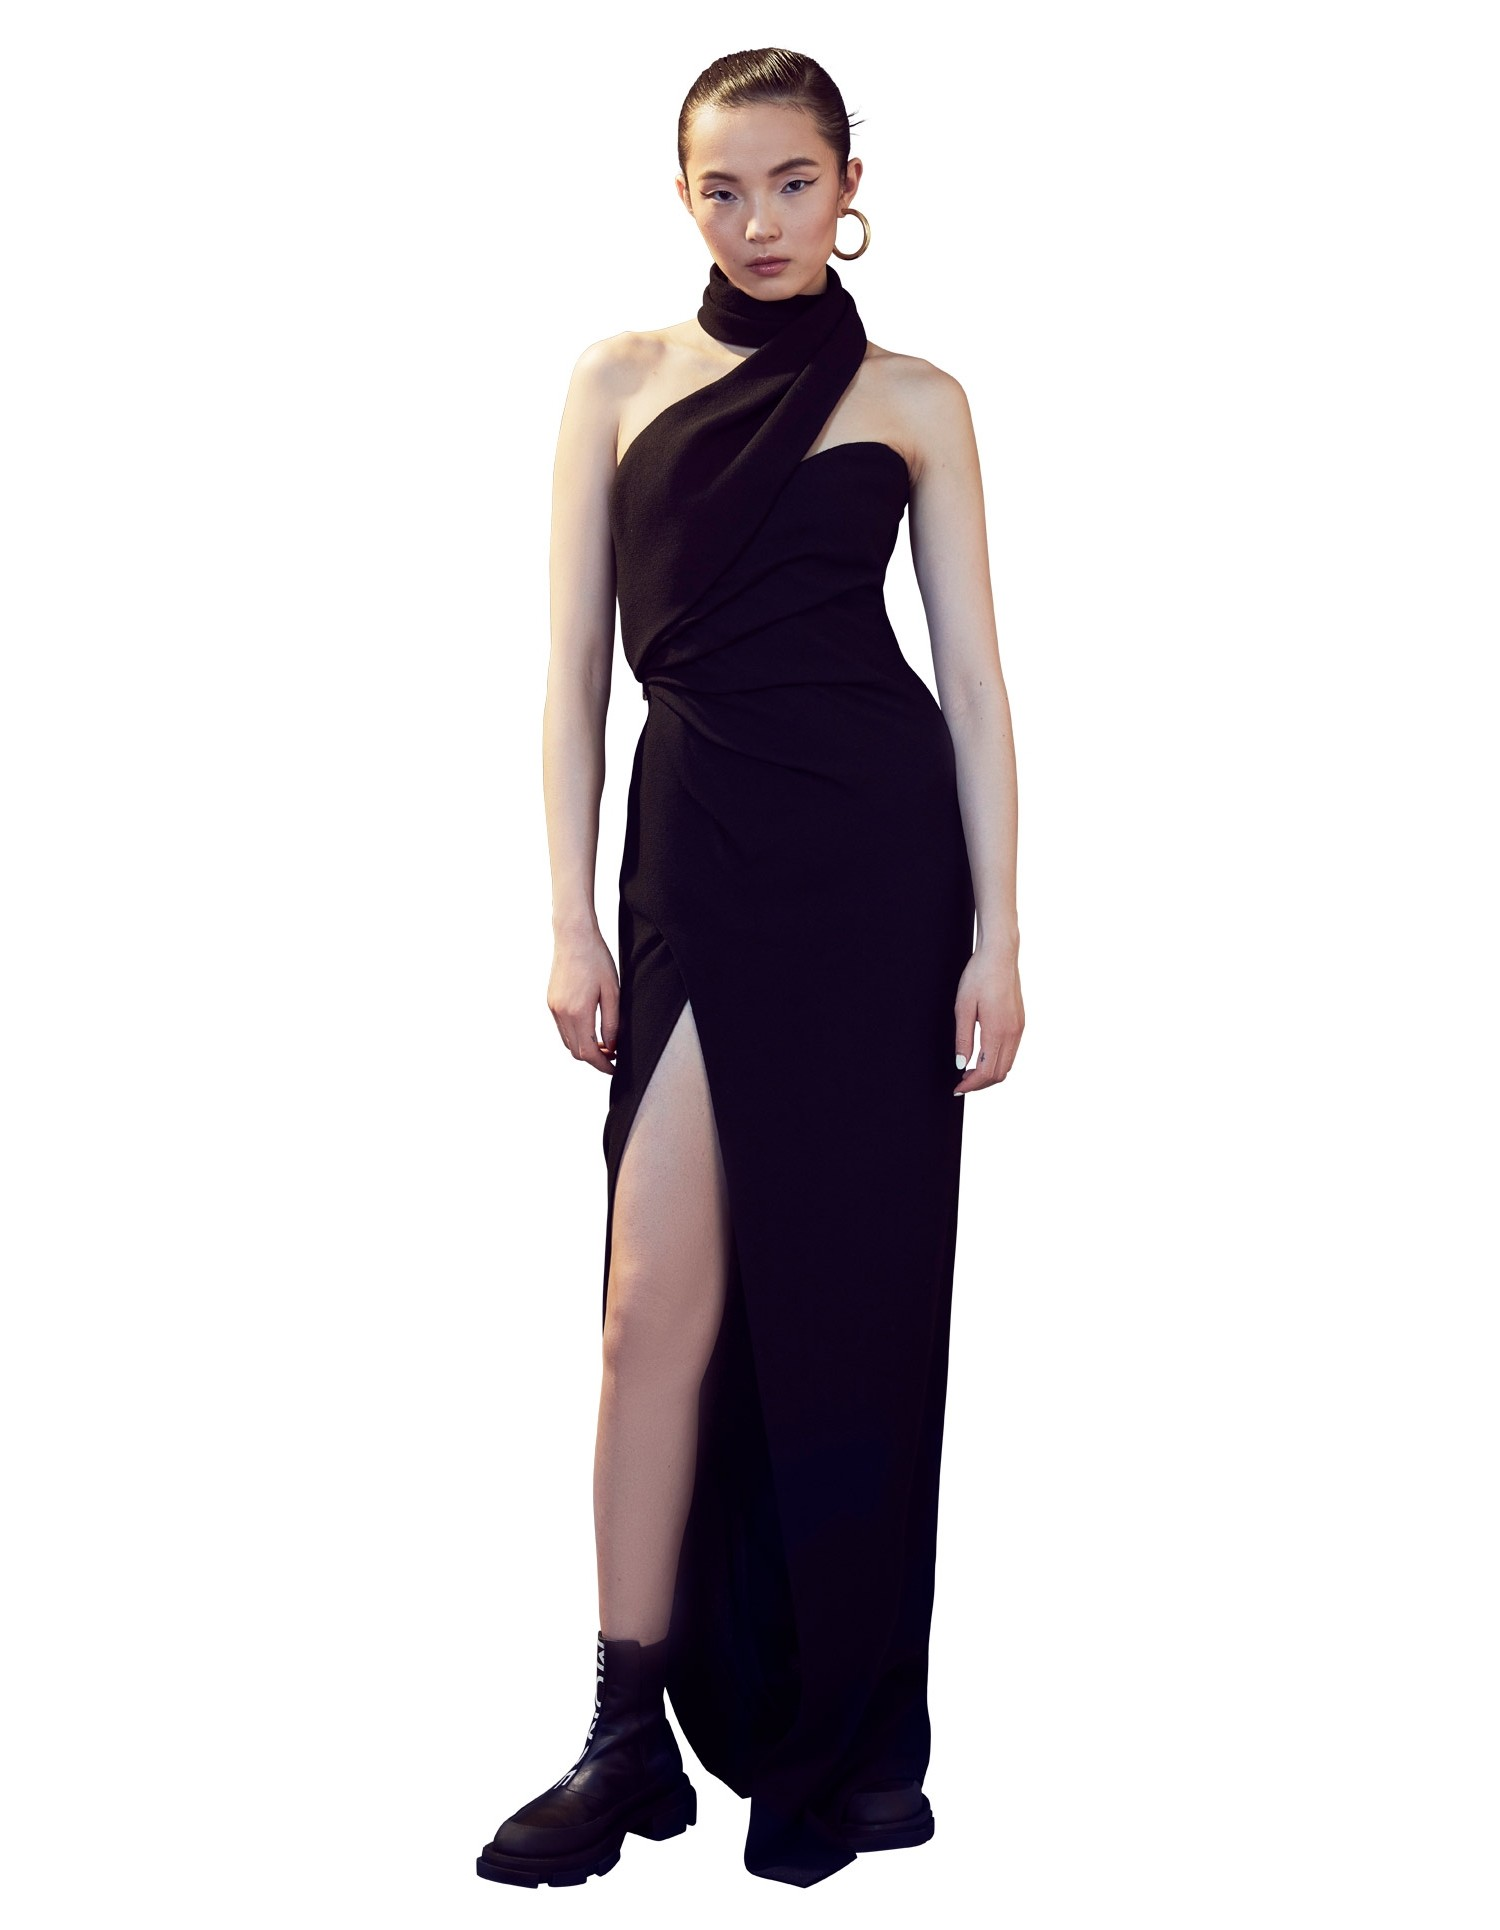 MONSE Asymmetrical Halter Gown in Black on Model Full Front View